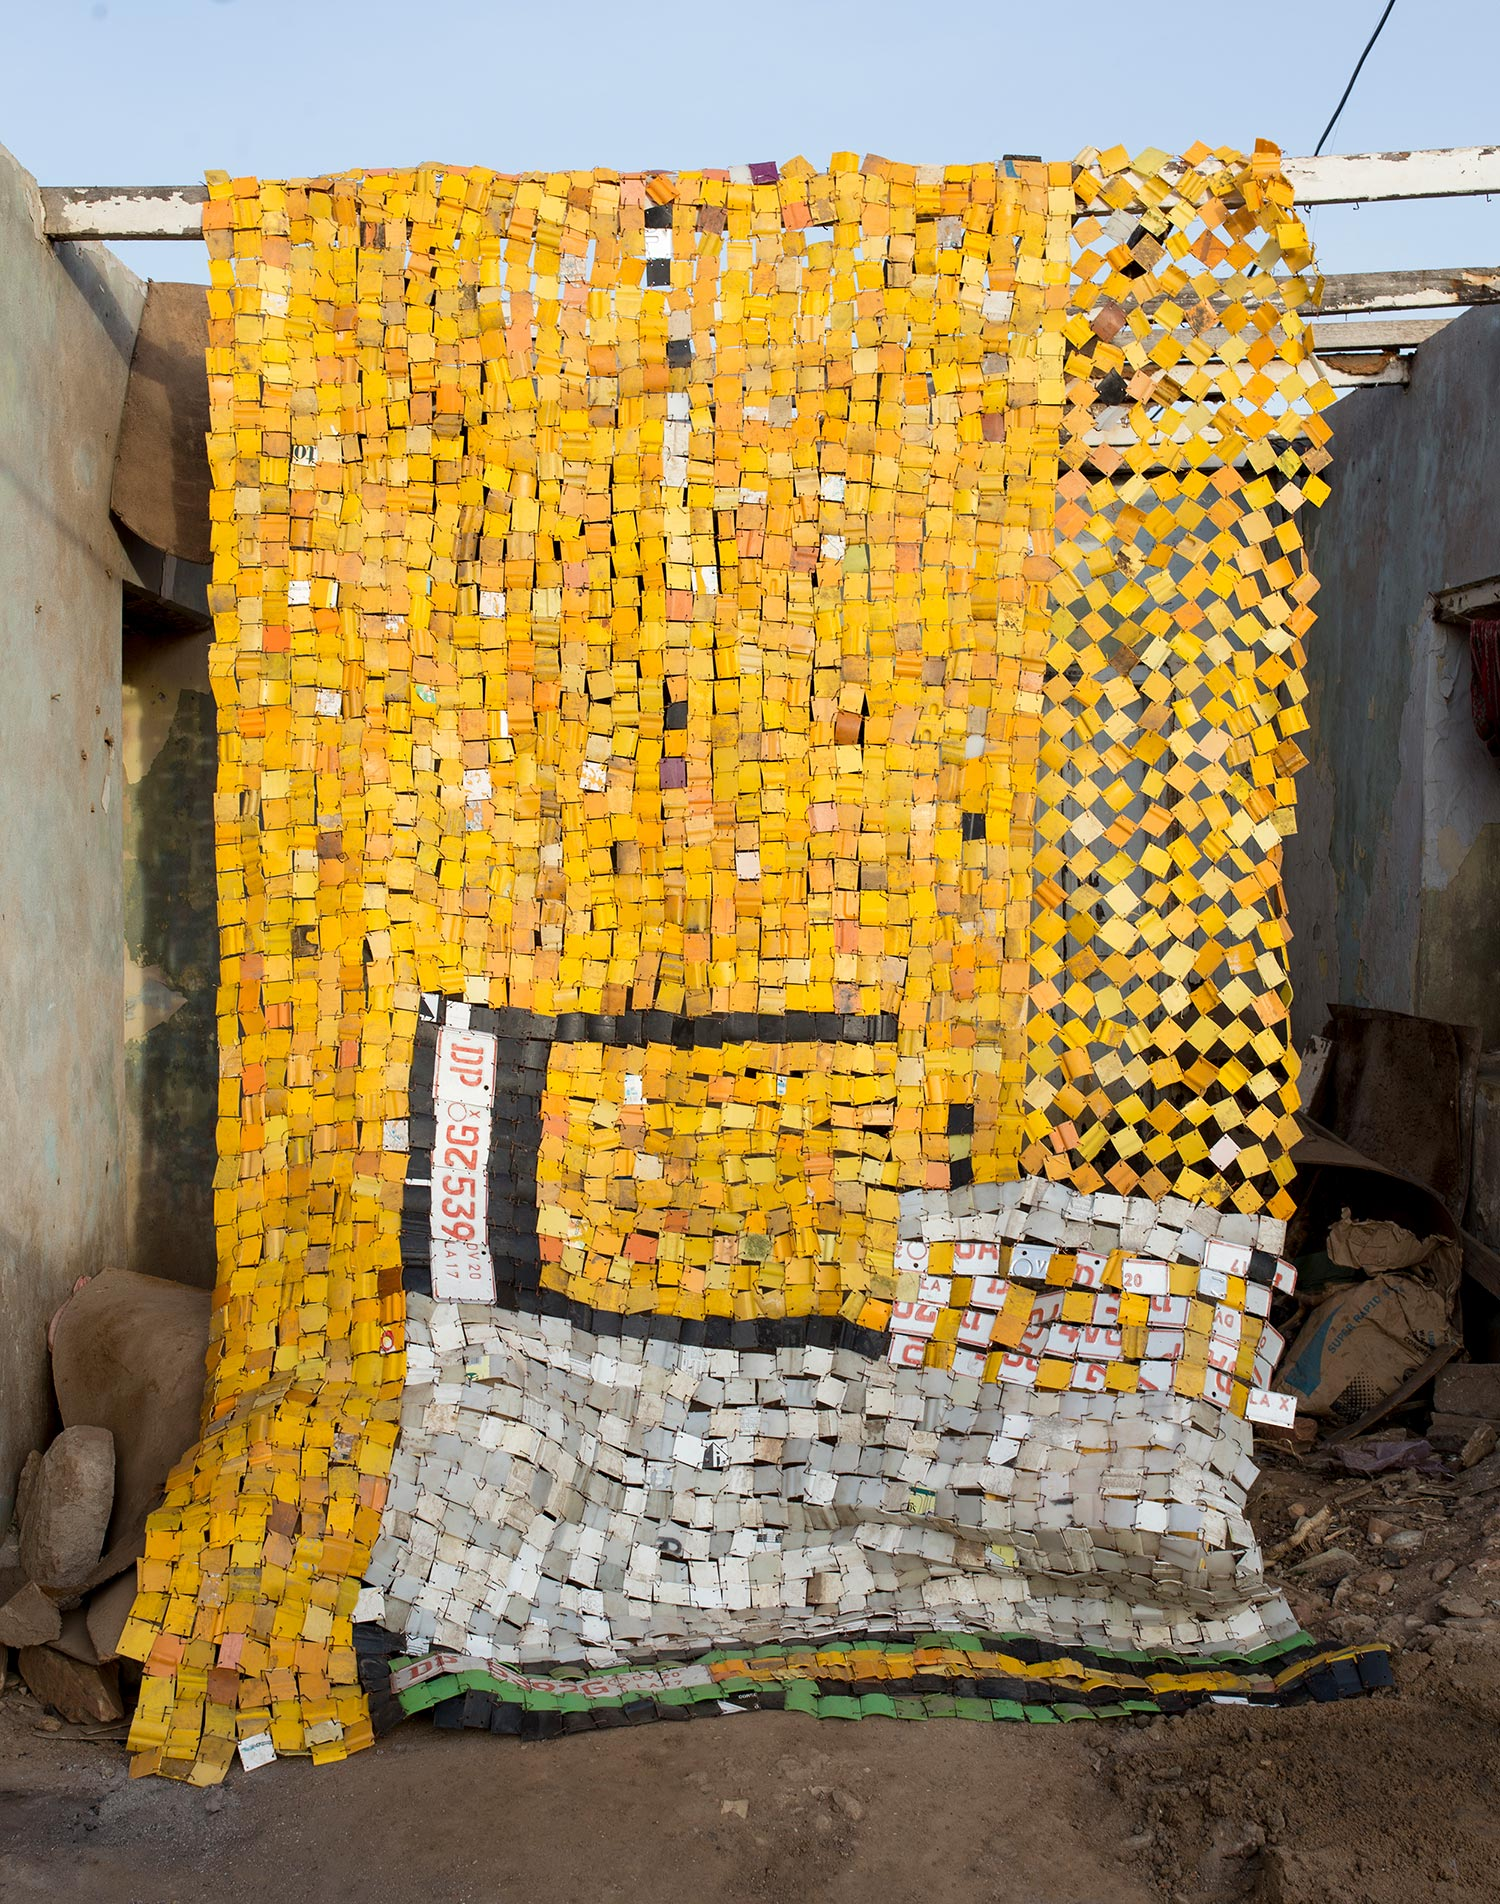 Artwork by Serge Attukwei Clottey VKL2019